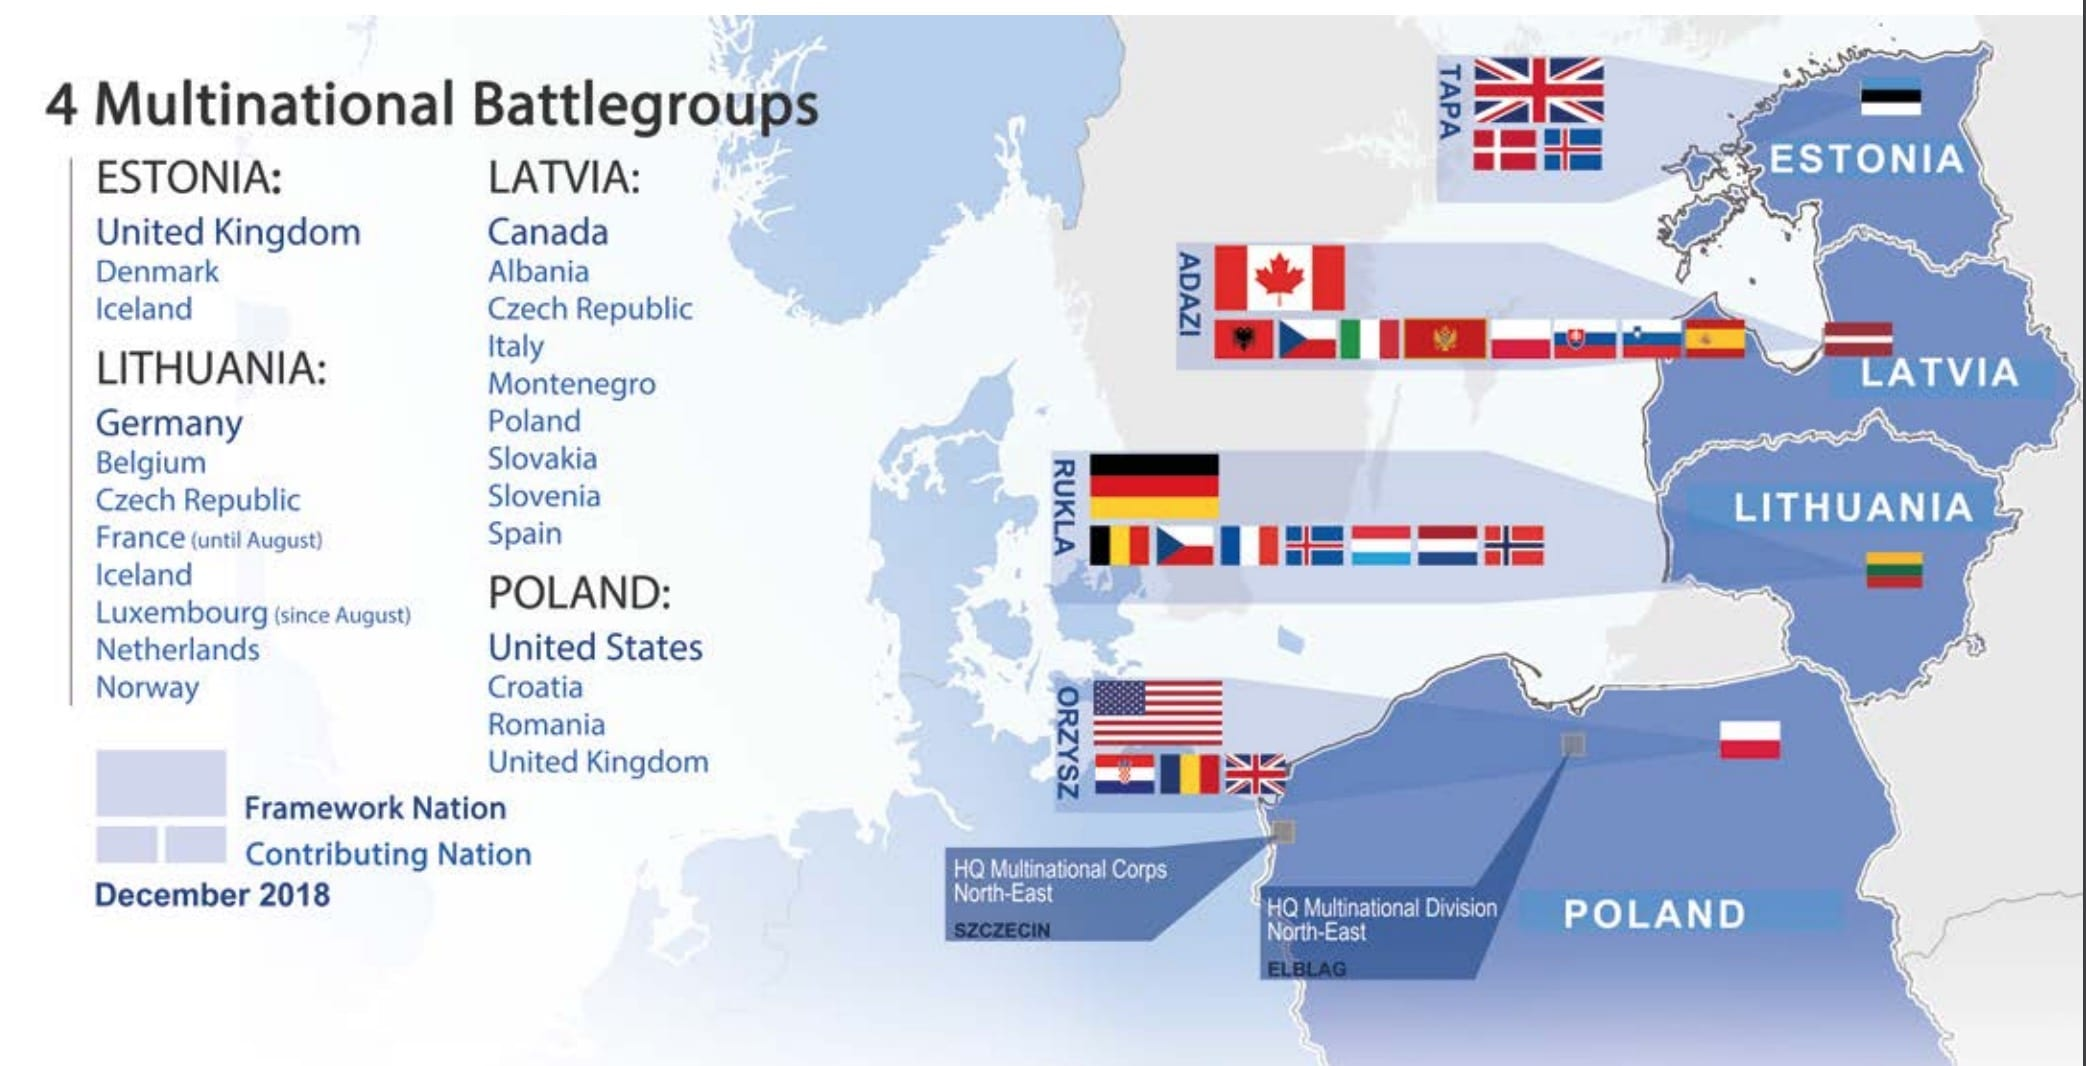 Image Graphic from NATO 2018 Annual Report